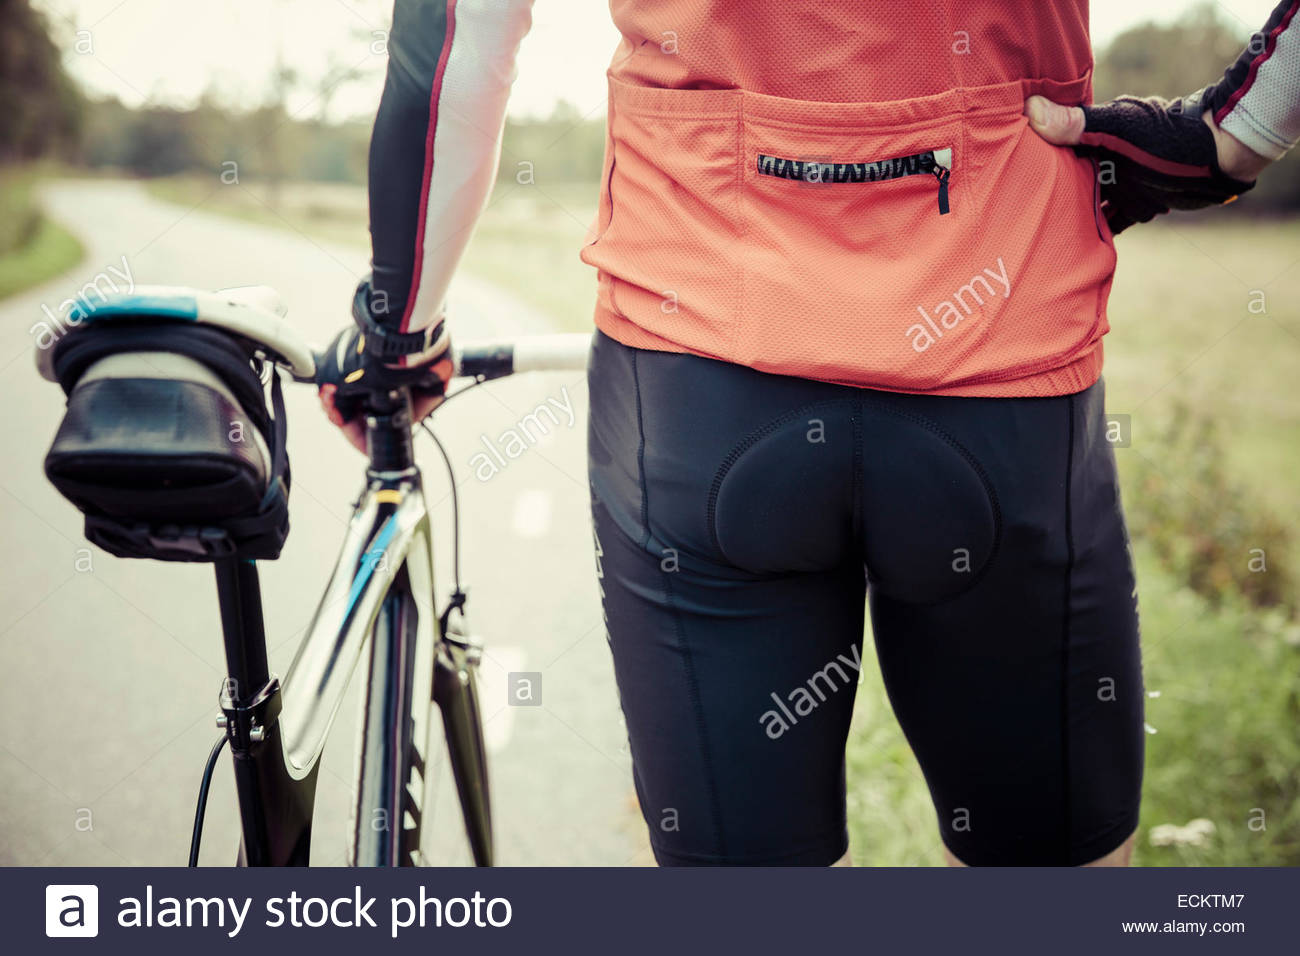 Rear view midsection of cyclist standing by bicycle on country road - Stock Image